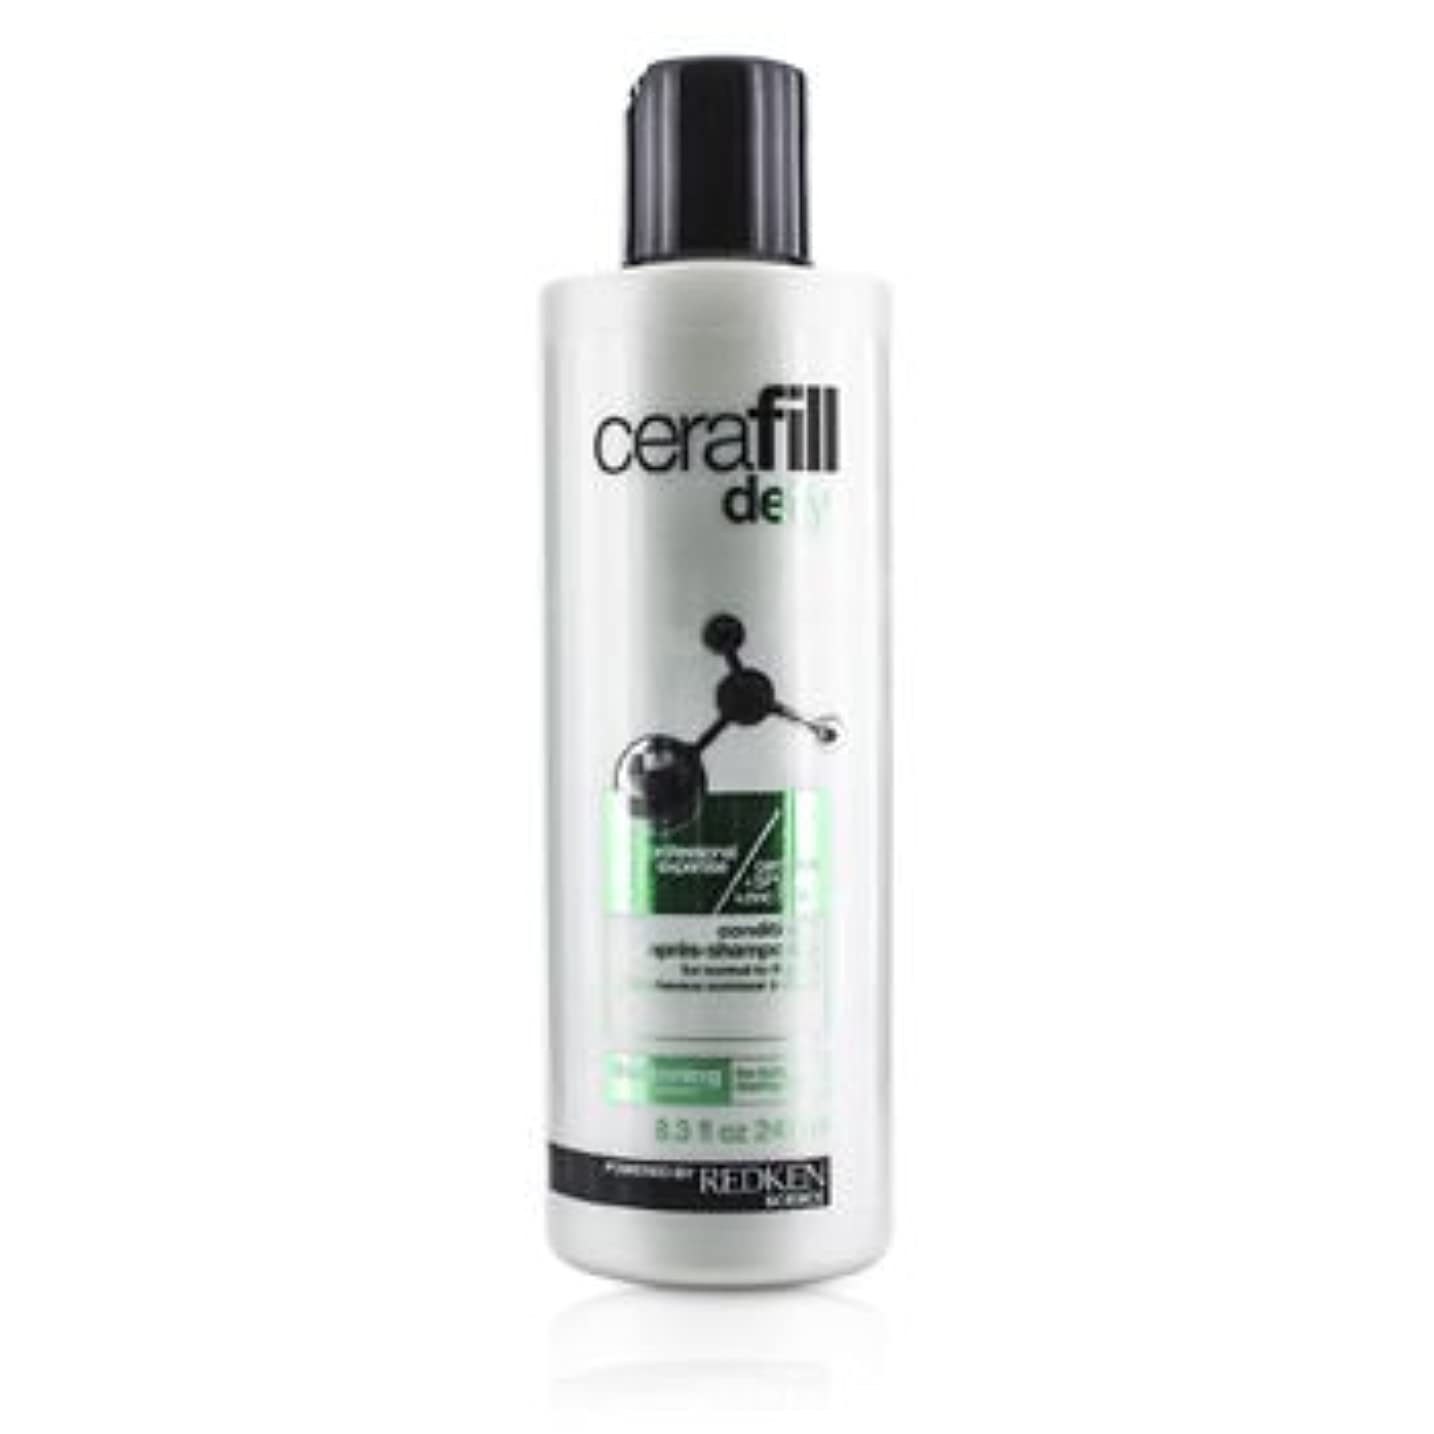 [Redken] Cerafill Defy Thickening Conditioner (For Normal to Thin Hair) 245ml/8.3oz